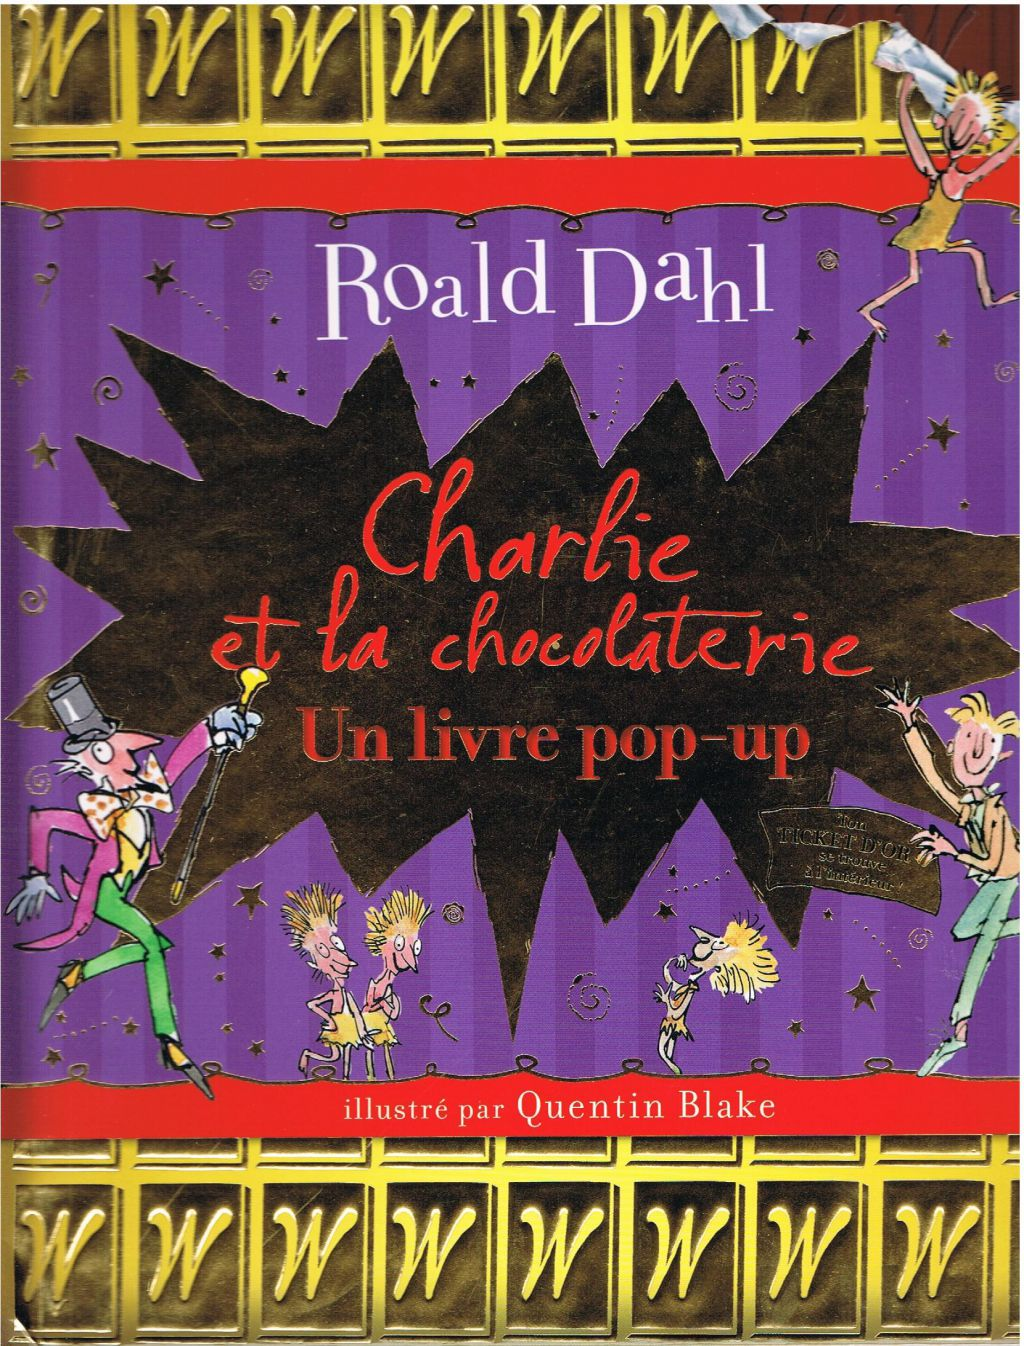 livre pop up charlie et la chocolaterie de roald dahl ecole des c dres qu tigny. Black Bedroom Furniture Sets. Home Design Ideas